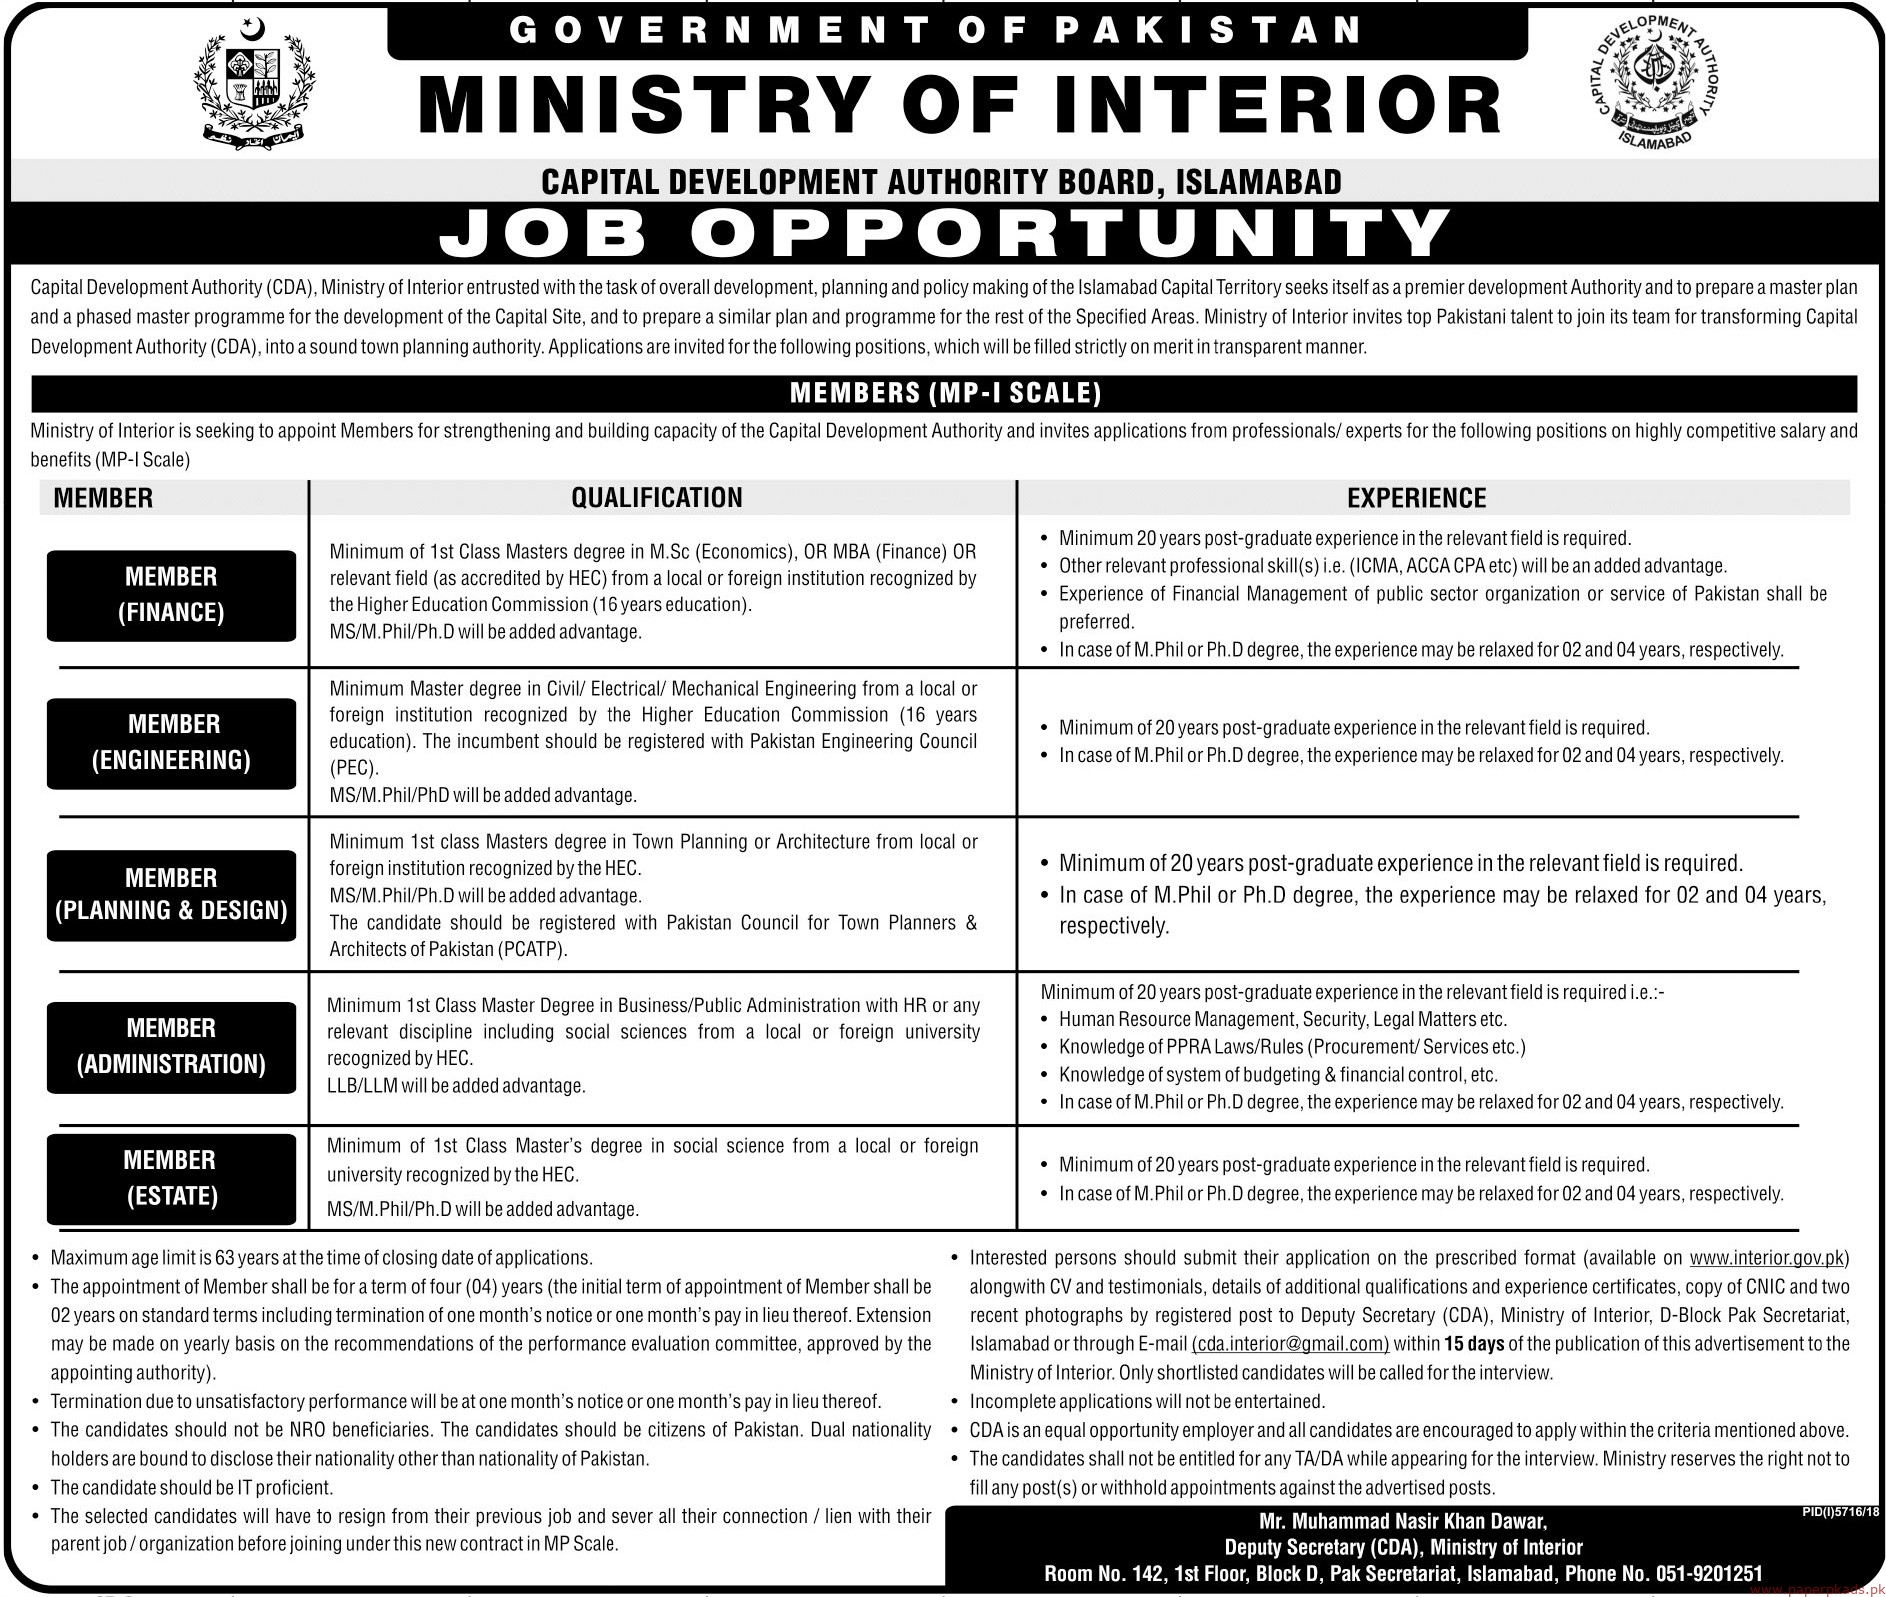 Government of Pakistan - Ministry of Interior Jobs 2019 Latest